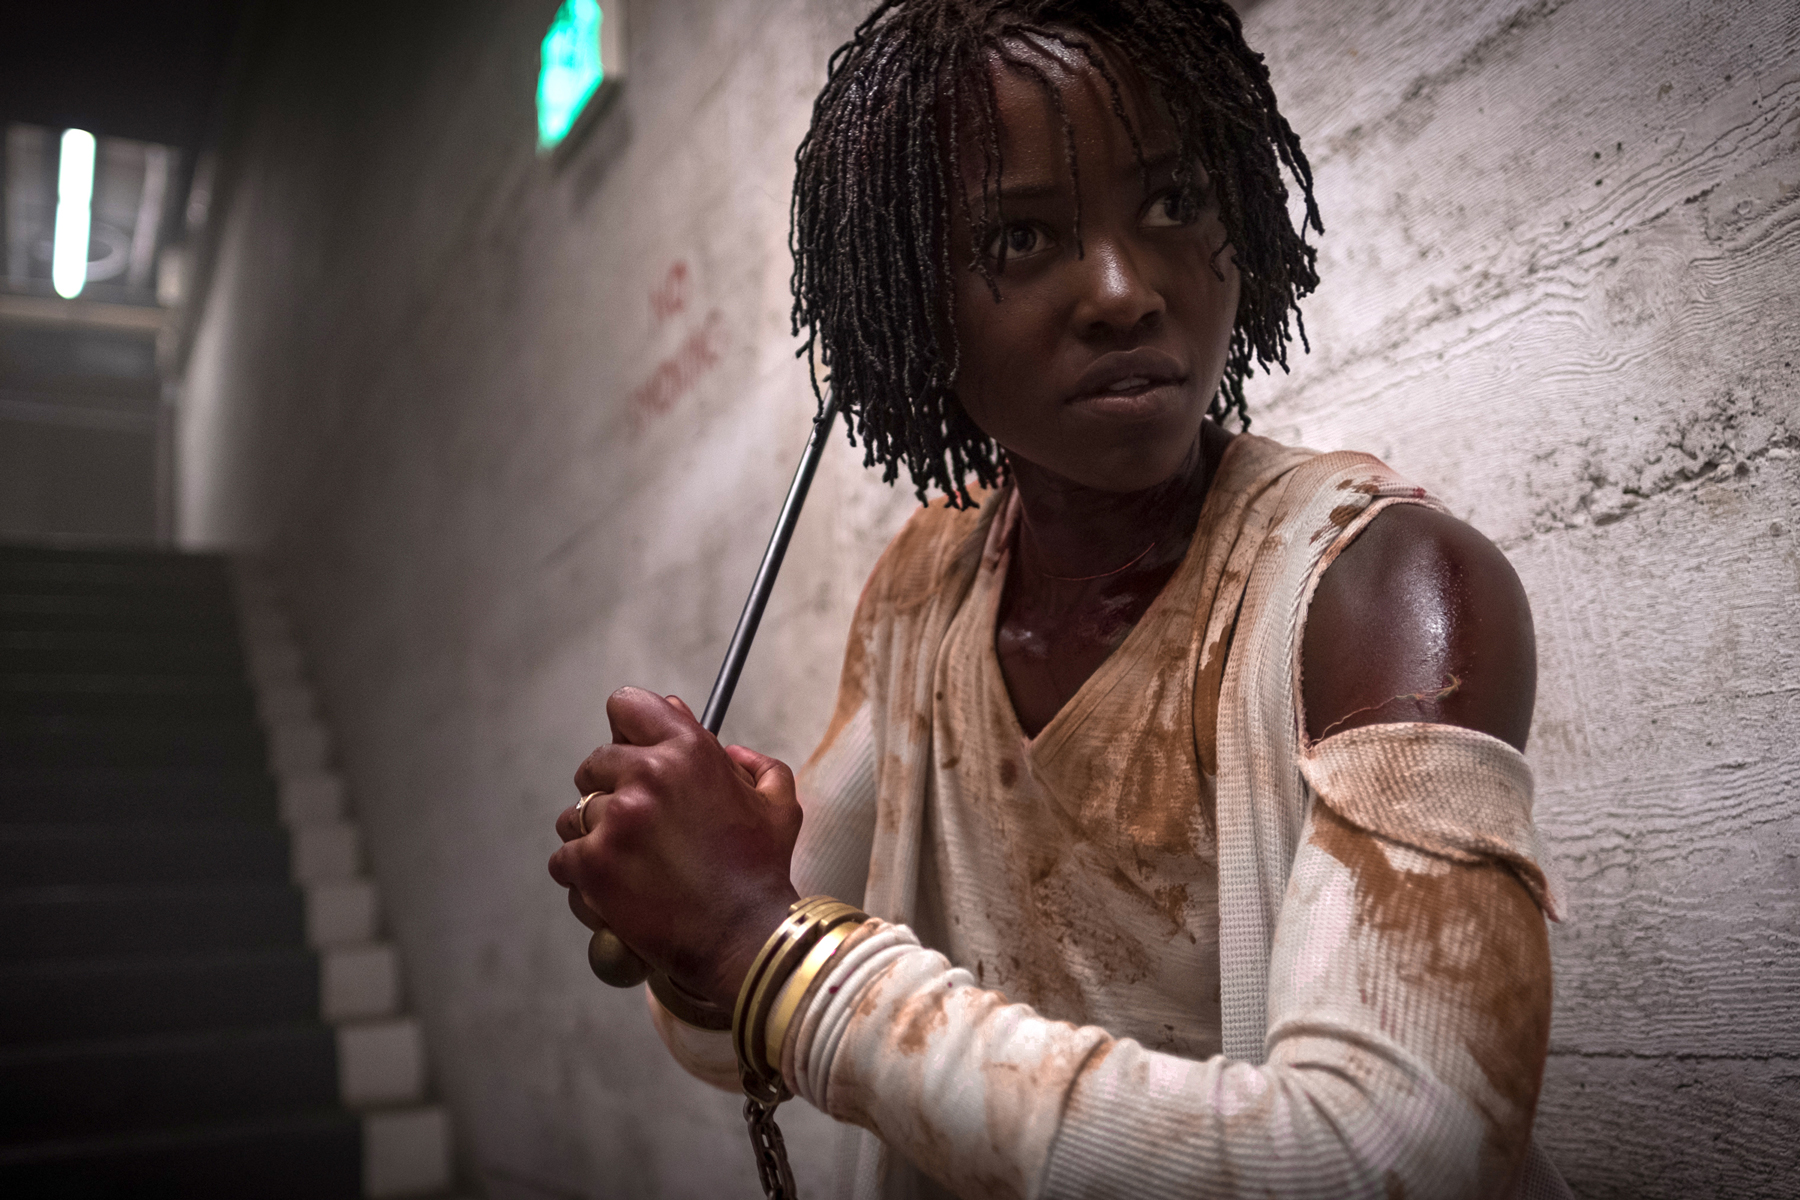 Lupita Nyong'o from the movie Us, one of many overlooked films in 2019